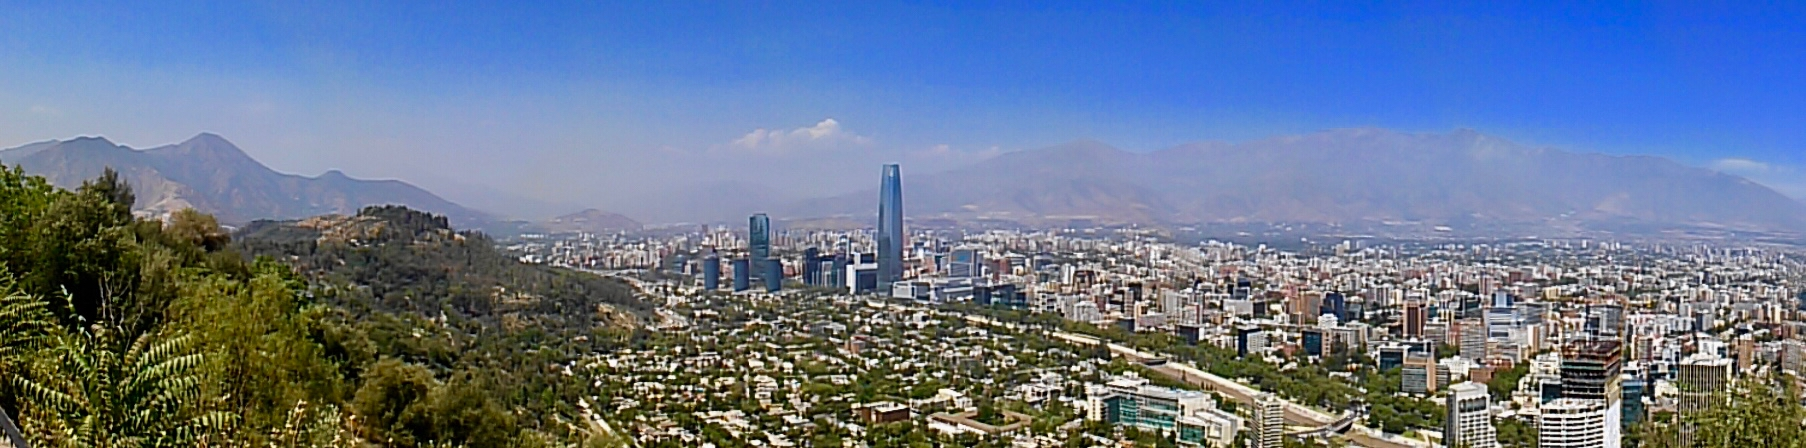 Santiago panorama with park, high rise buildings, and the Andes mountains.